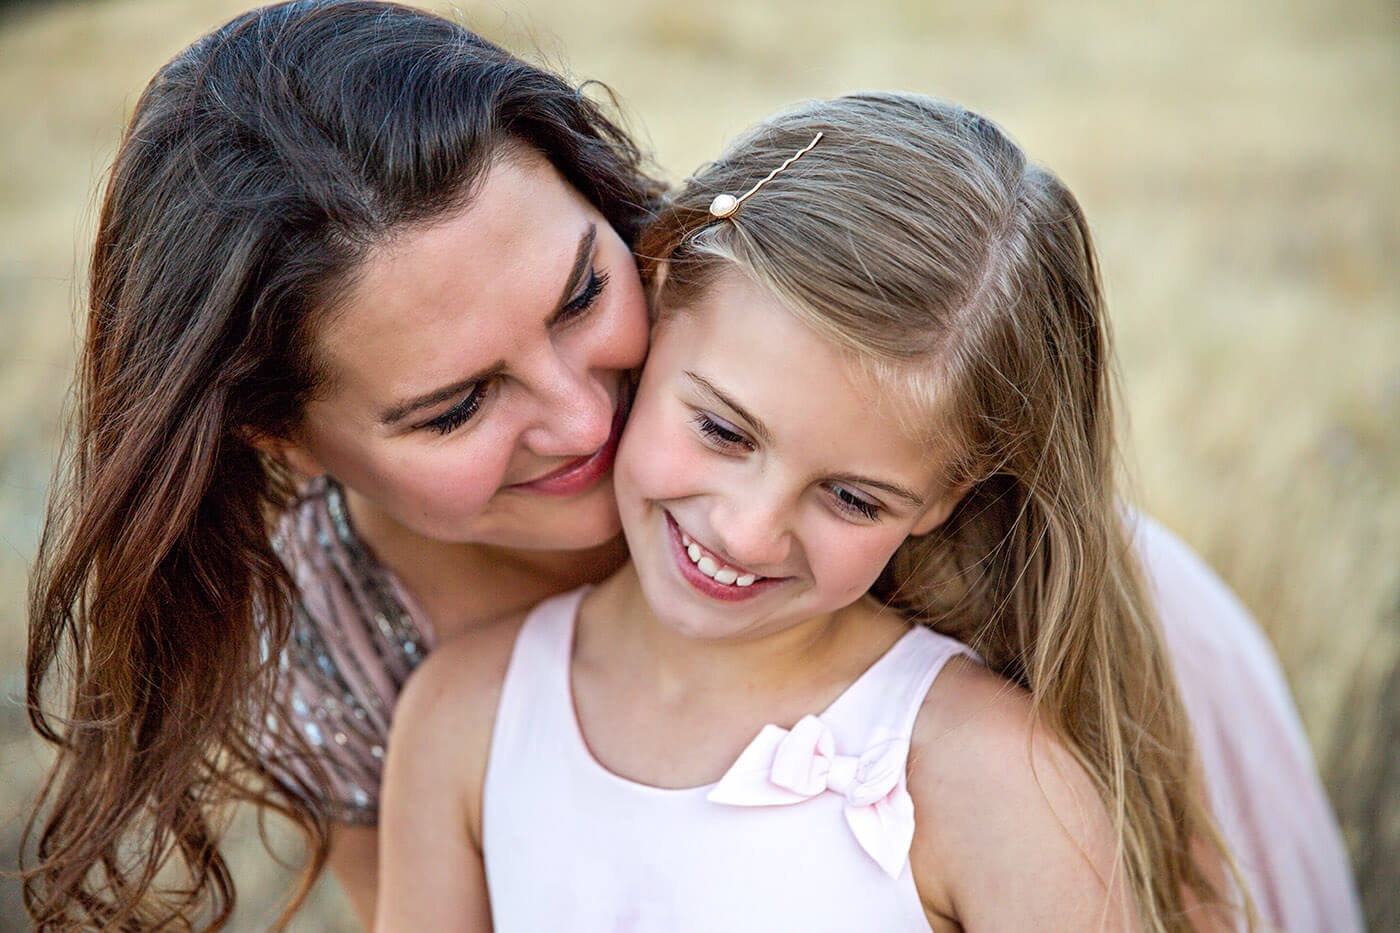 Raising healthy resilient kids through love as seen by mom hugging daughter